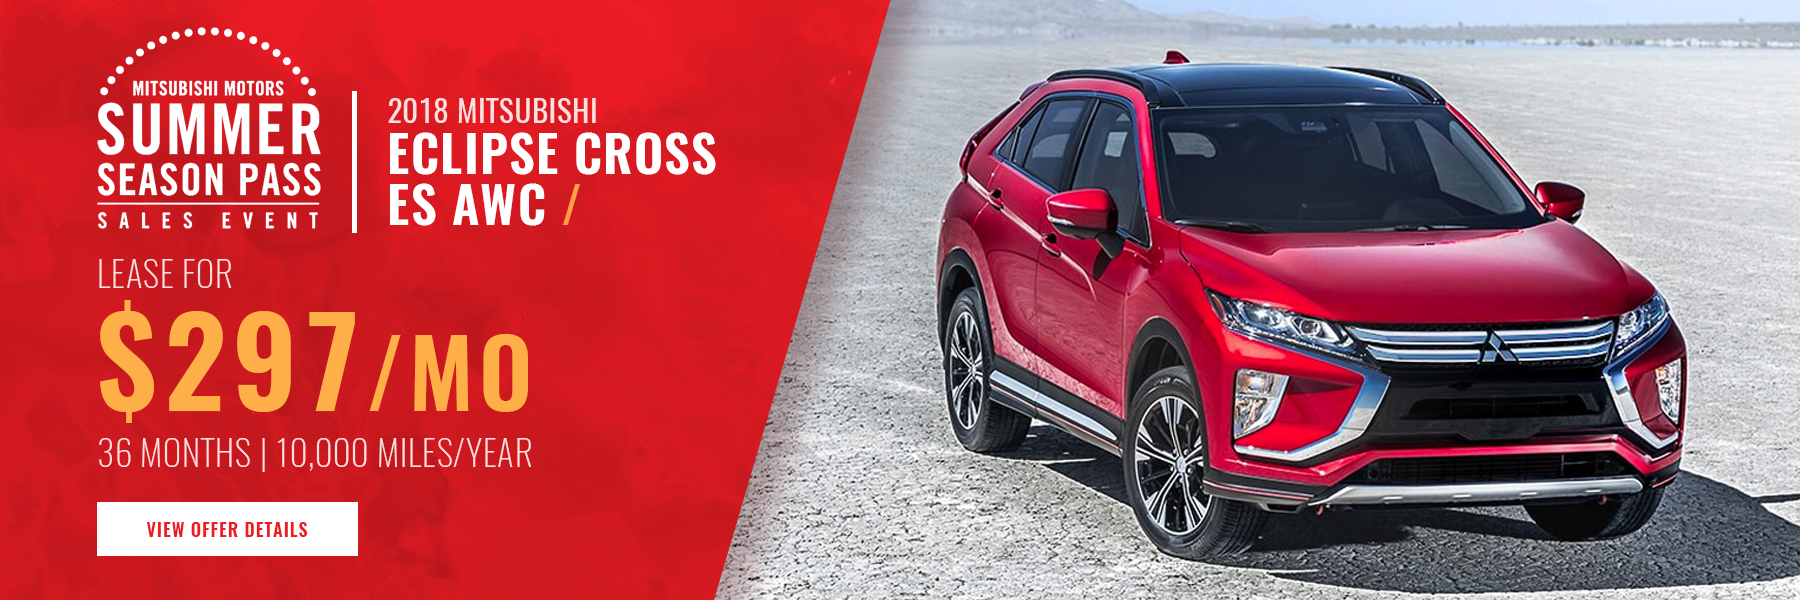 Mitsubishi Eclipse Cross Lease Offer Concord NH